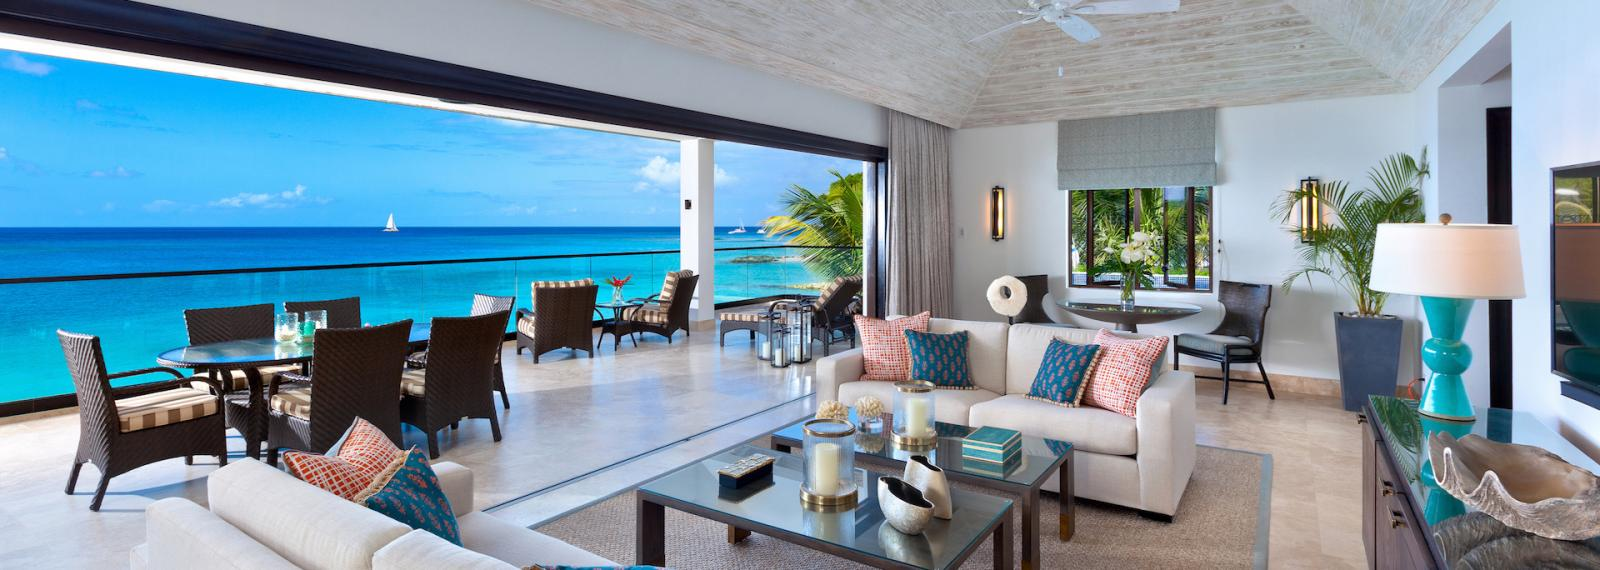 Curlew Suite at Sandpiper Barbados